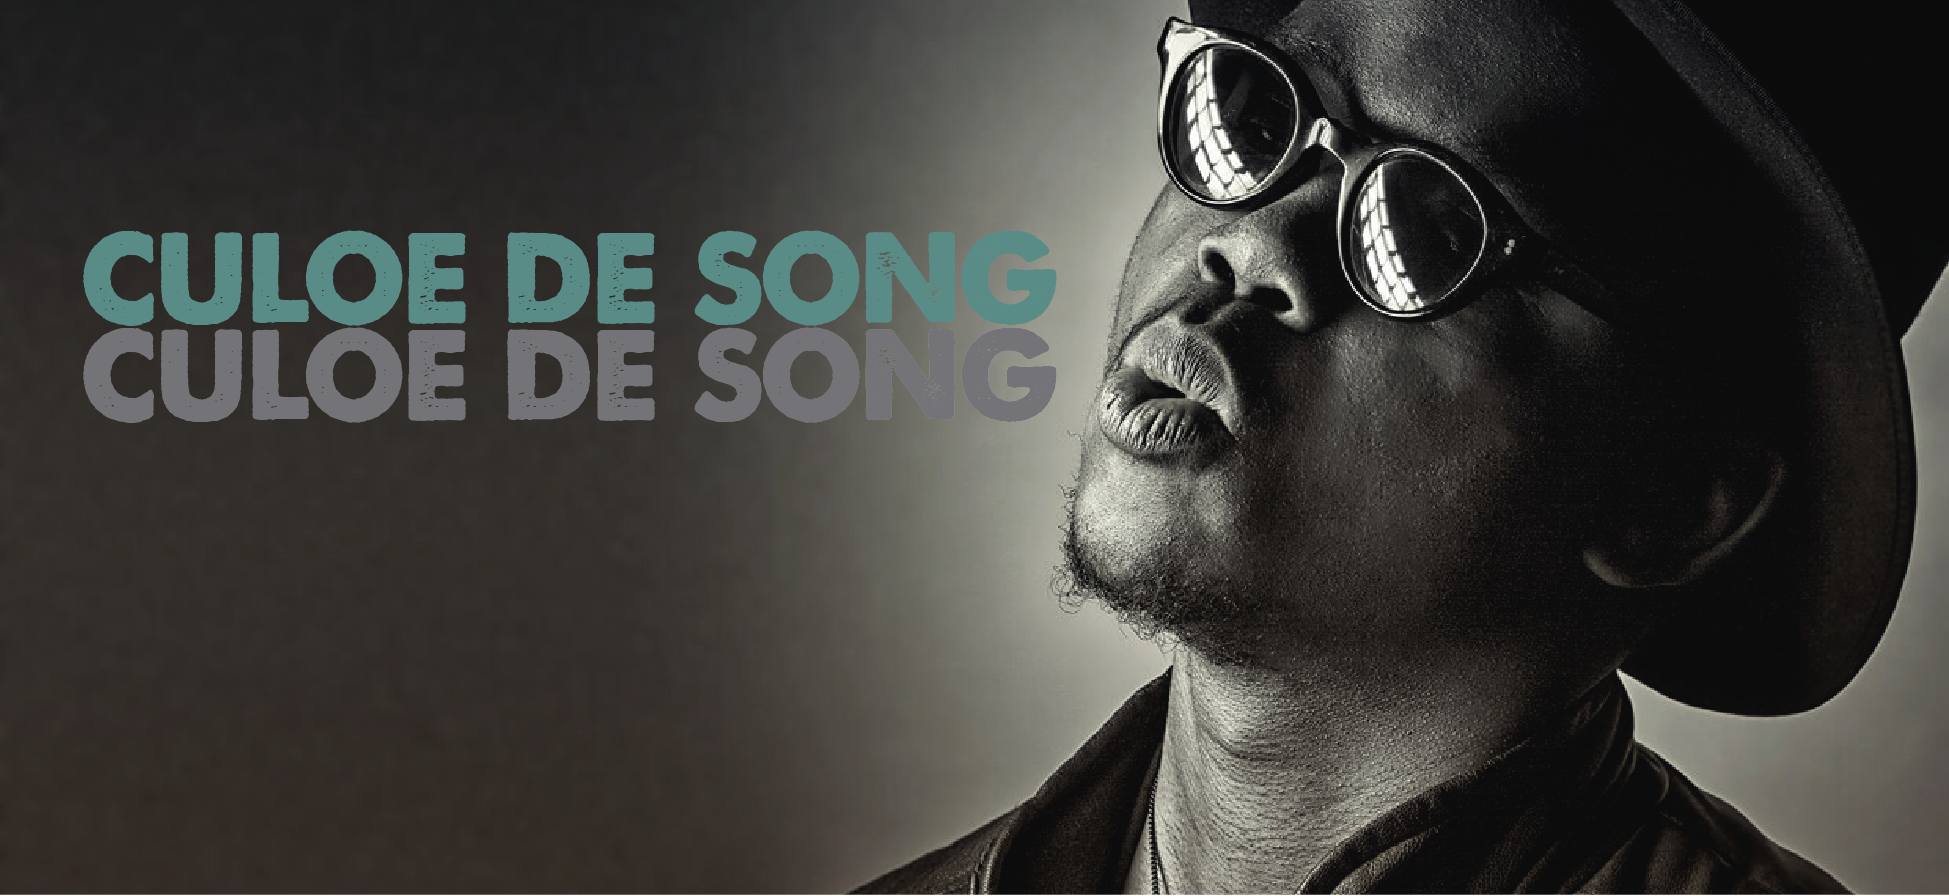 Profile: CULOE DE SONG